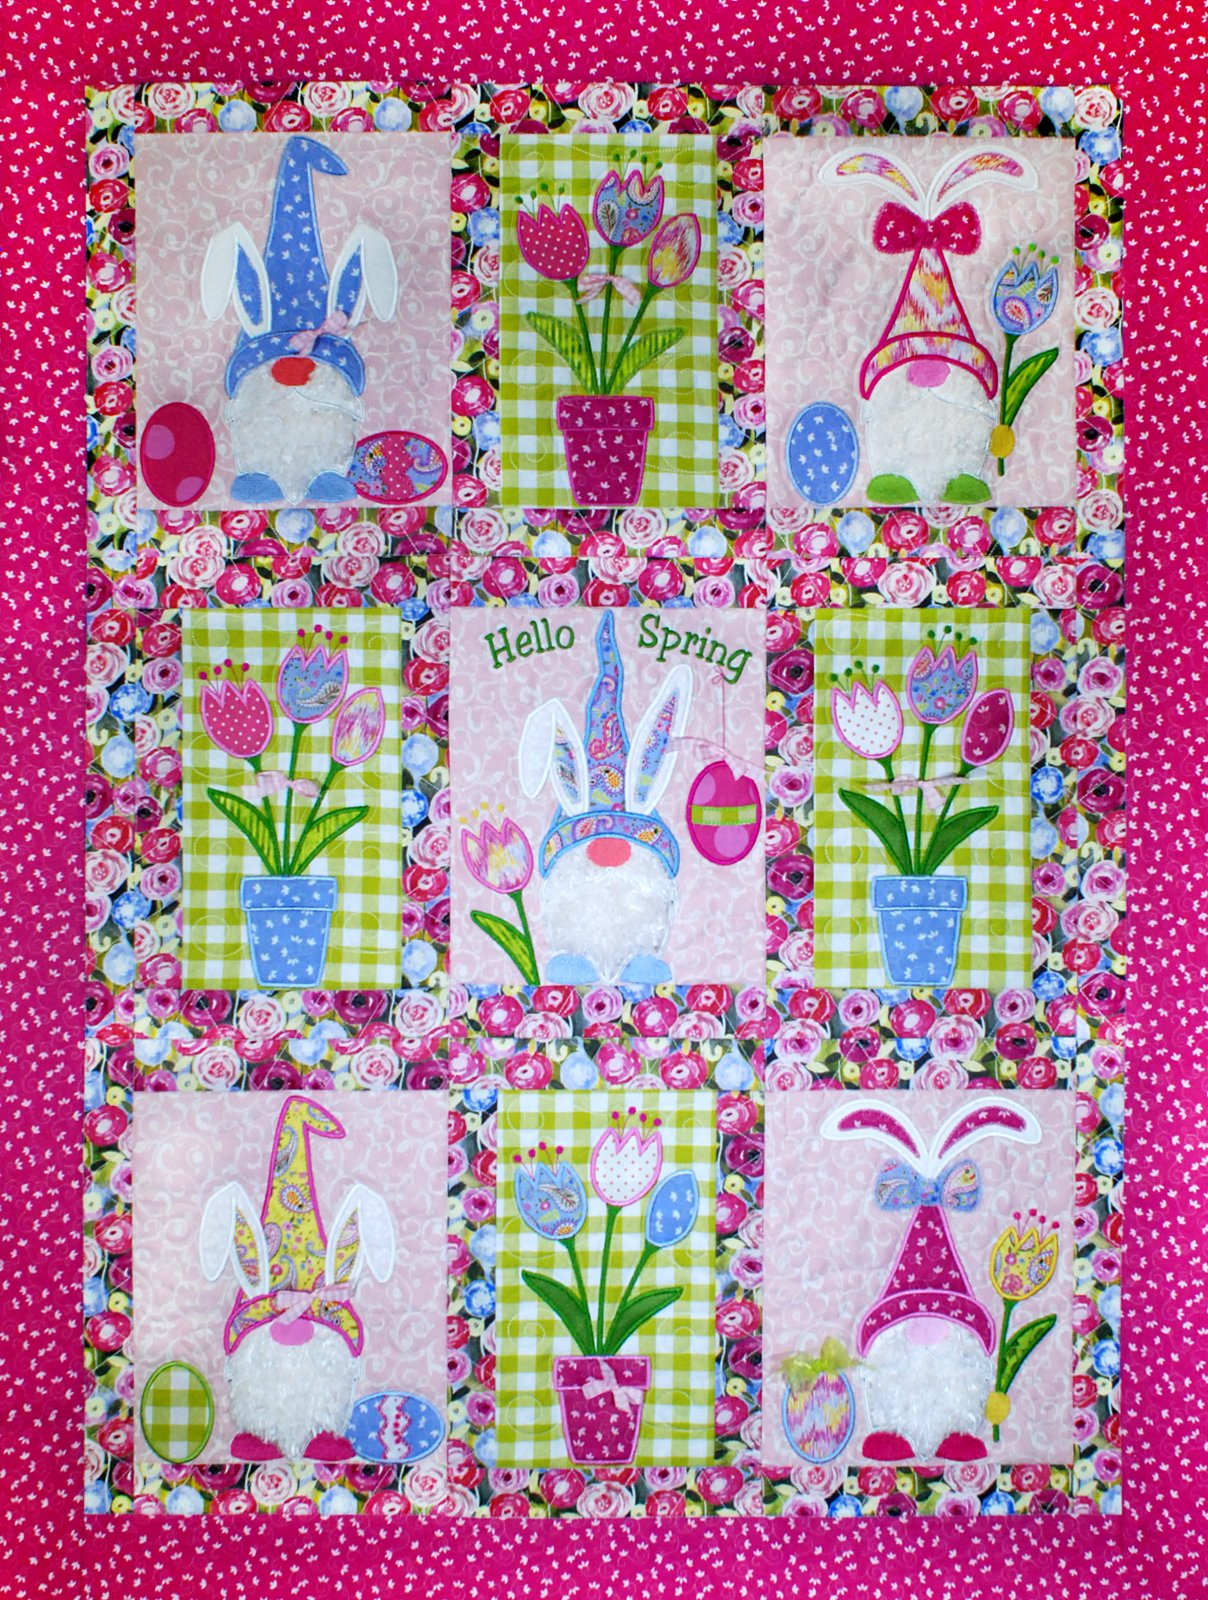 Hello Spring Bunny Gnome Quilt and Flag Download only (HQE-01-DDE-E)